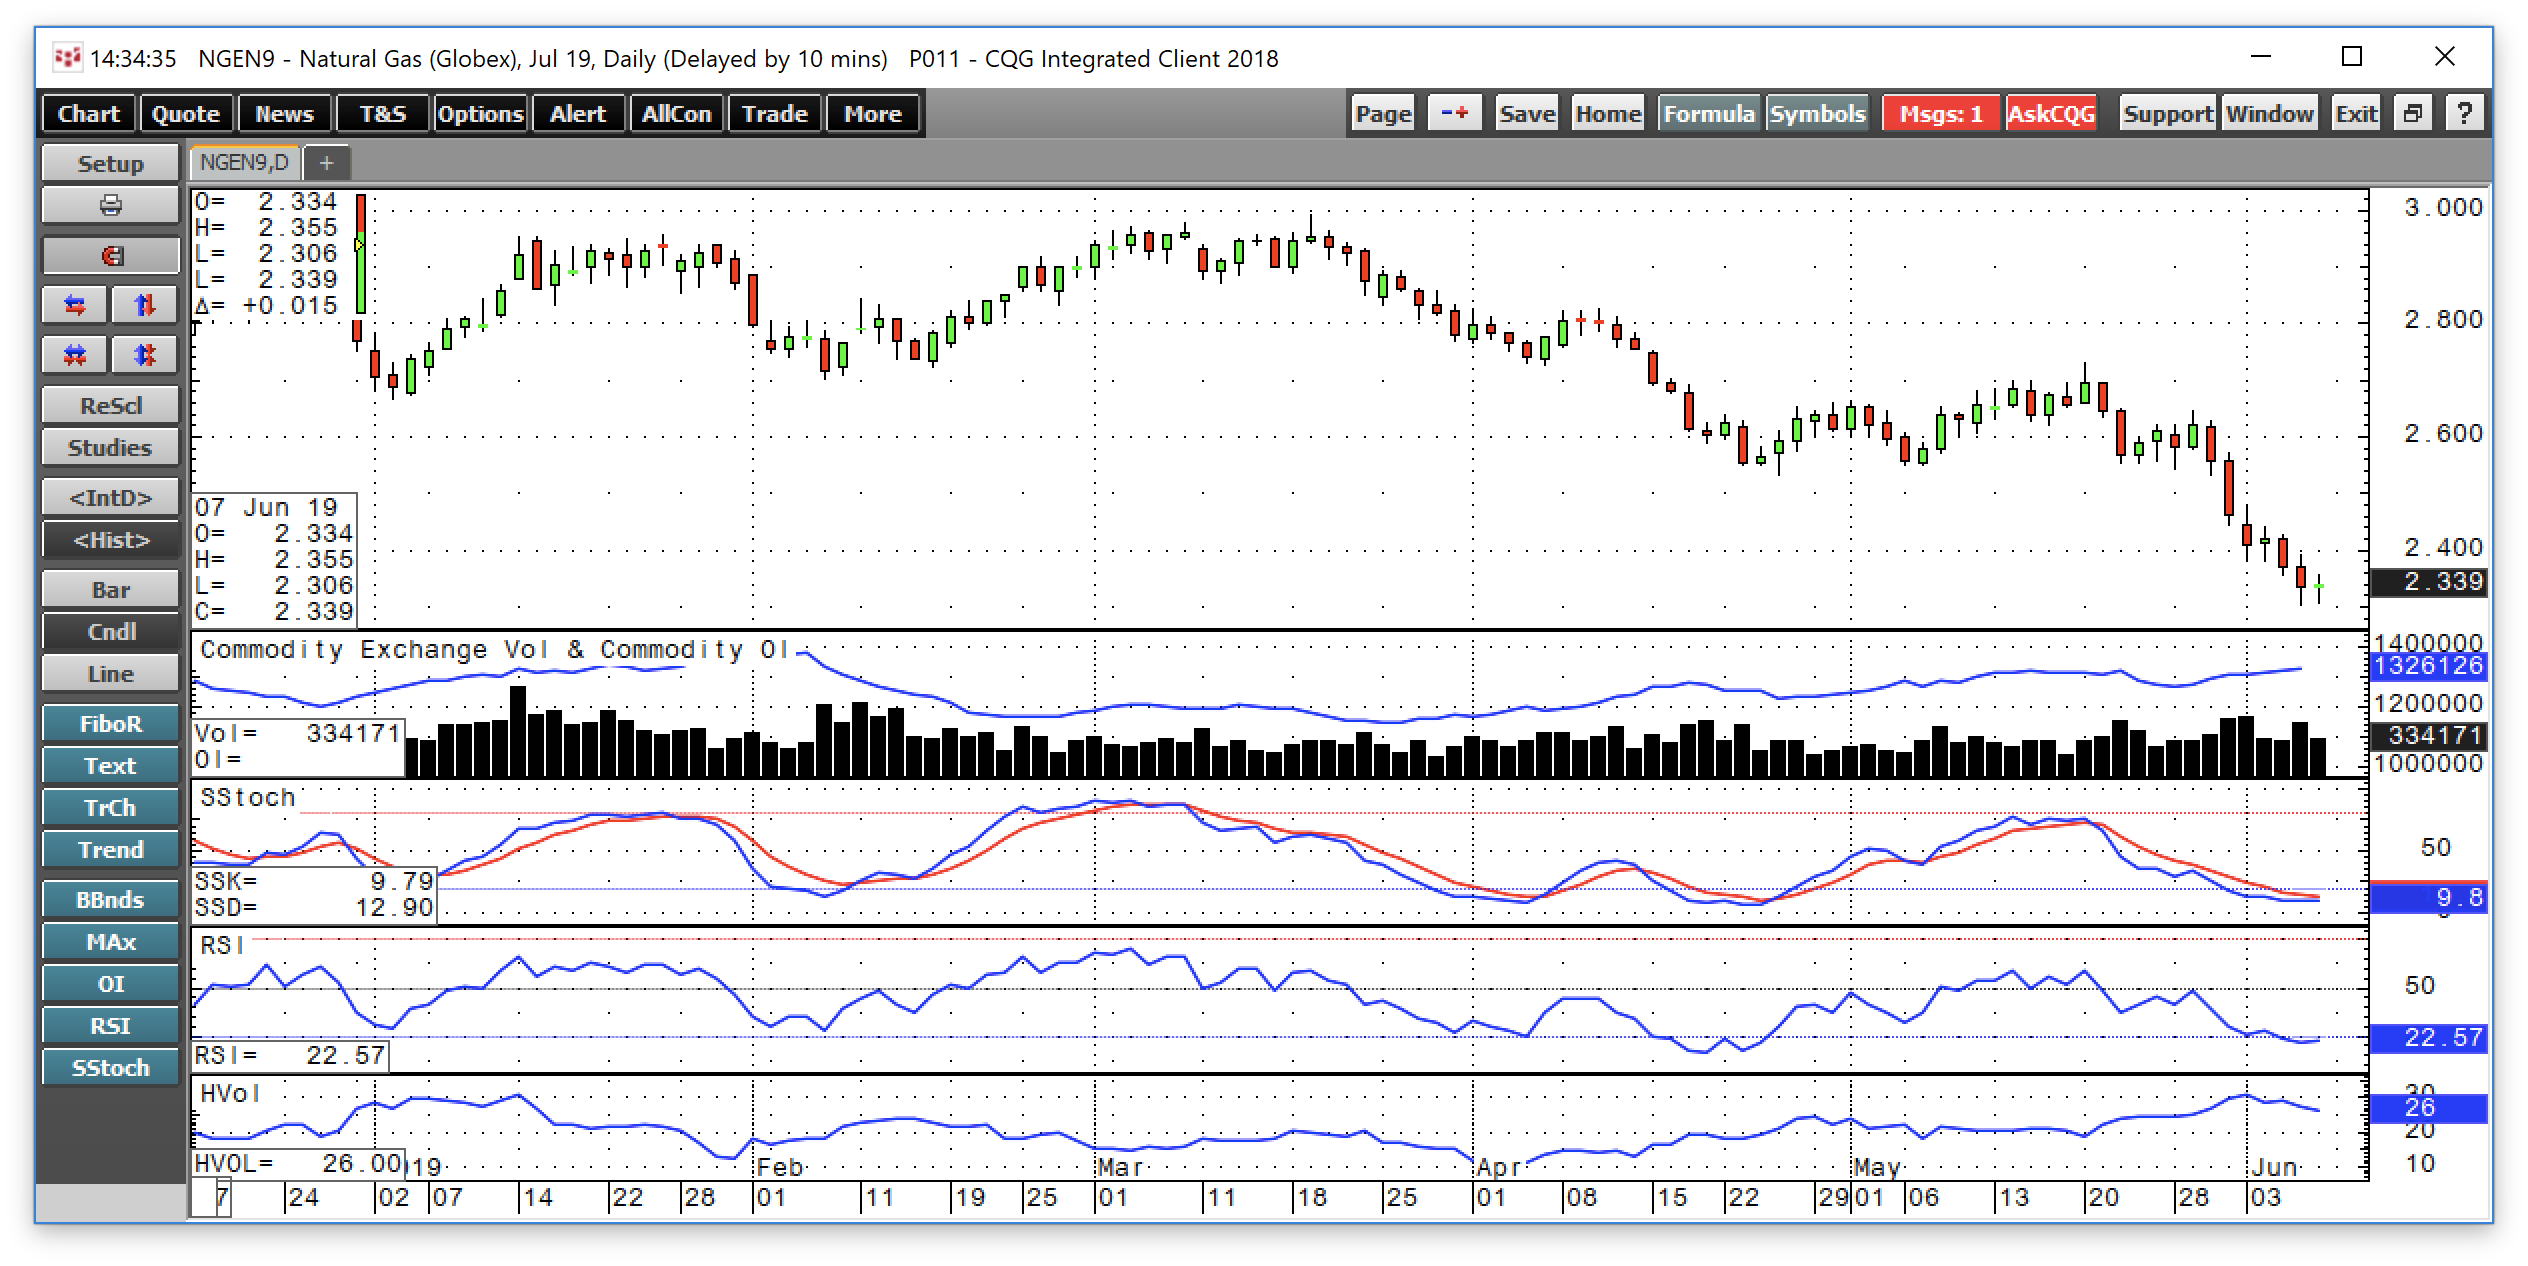 Natural Gas - Ugly Price Levels For The Bulls Could Be An Opportunity